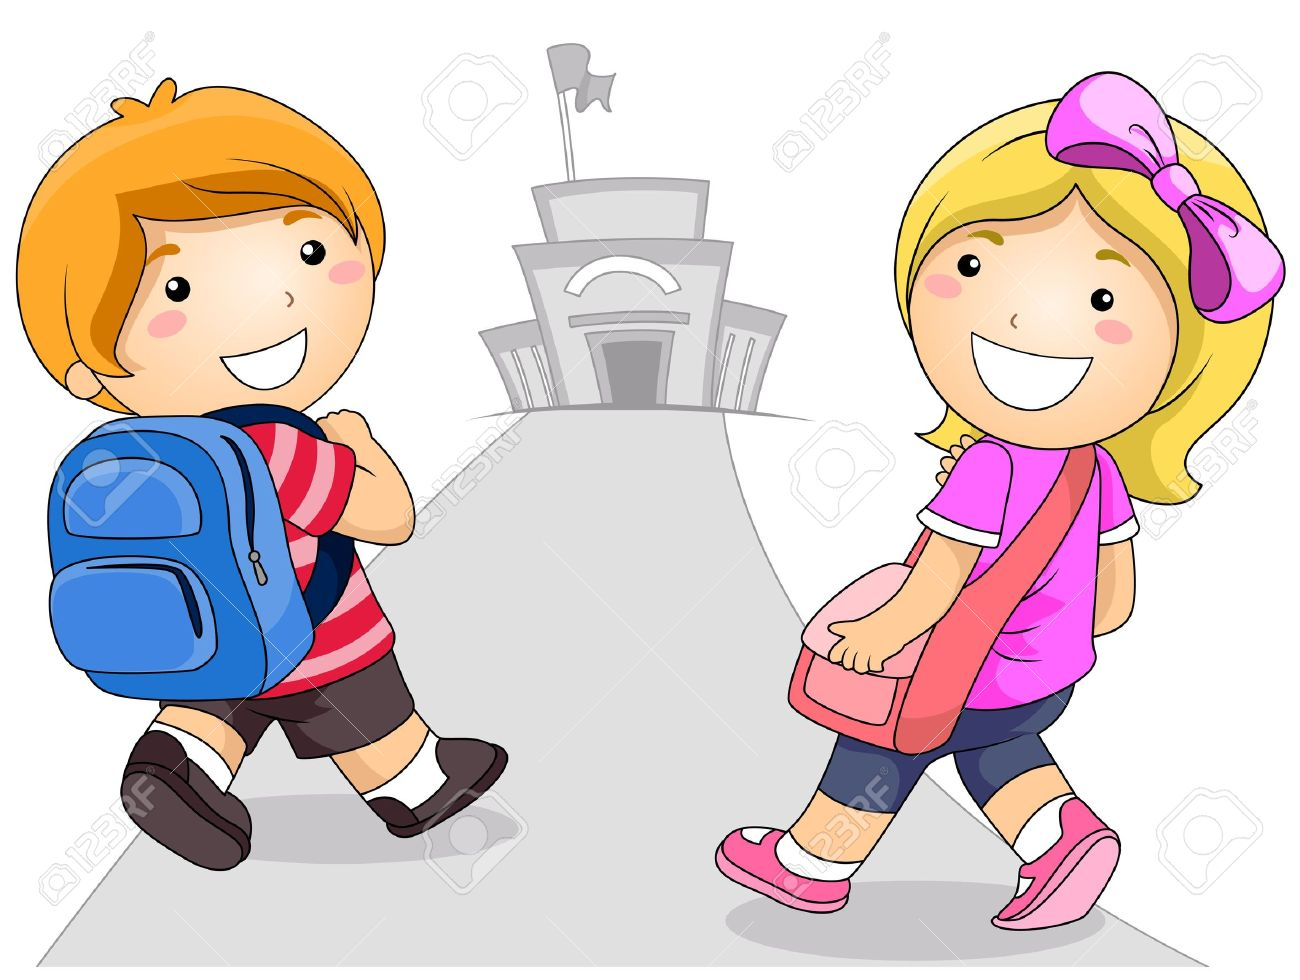 illustration featuring a young boy and girl going to school stock